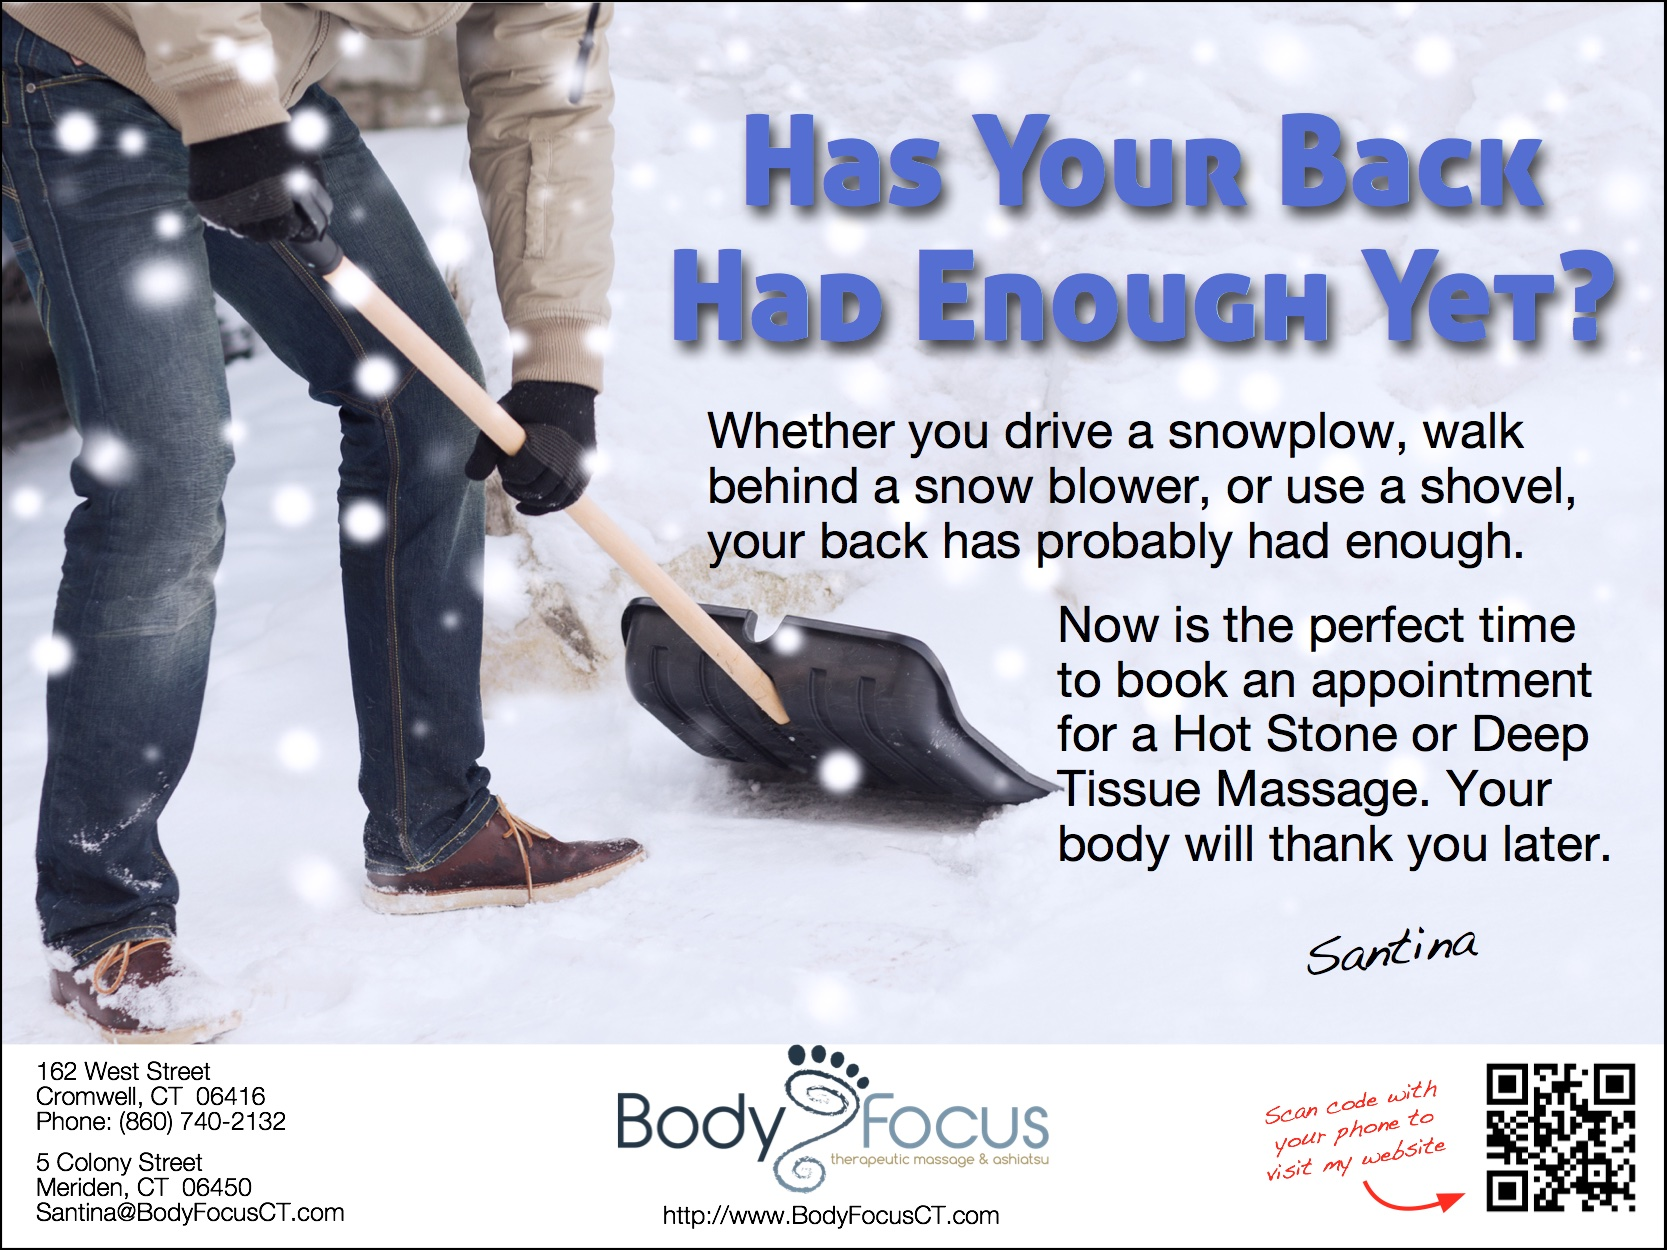 Book a Massage at Body Focus Therapeutic Massage today